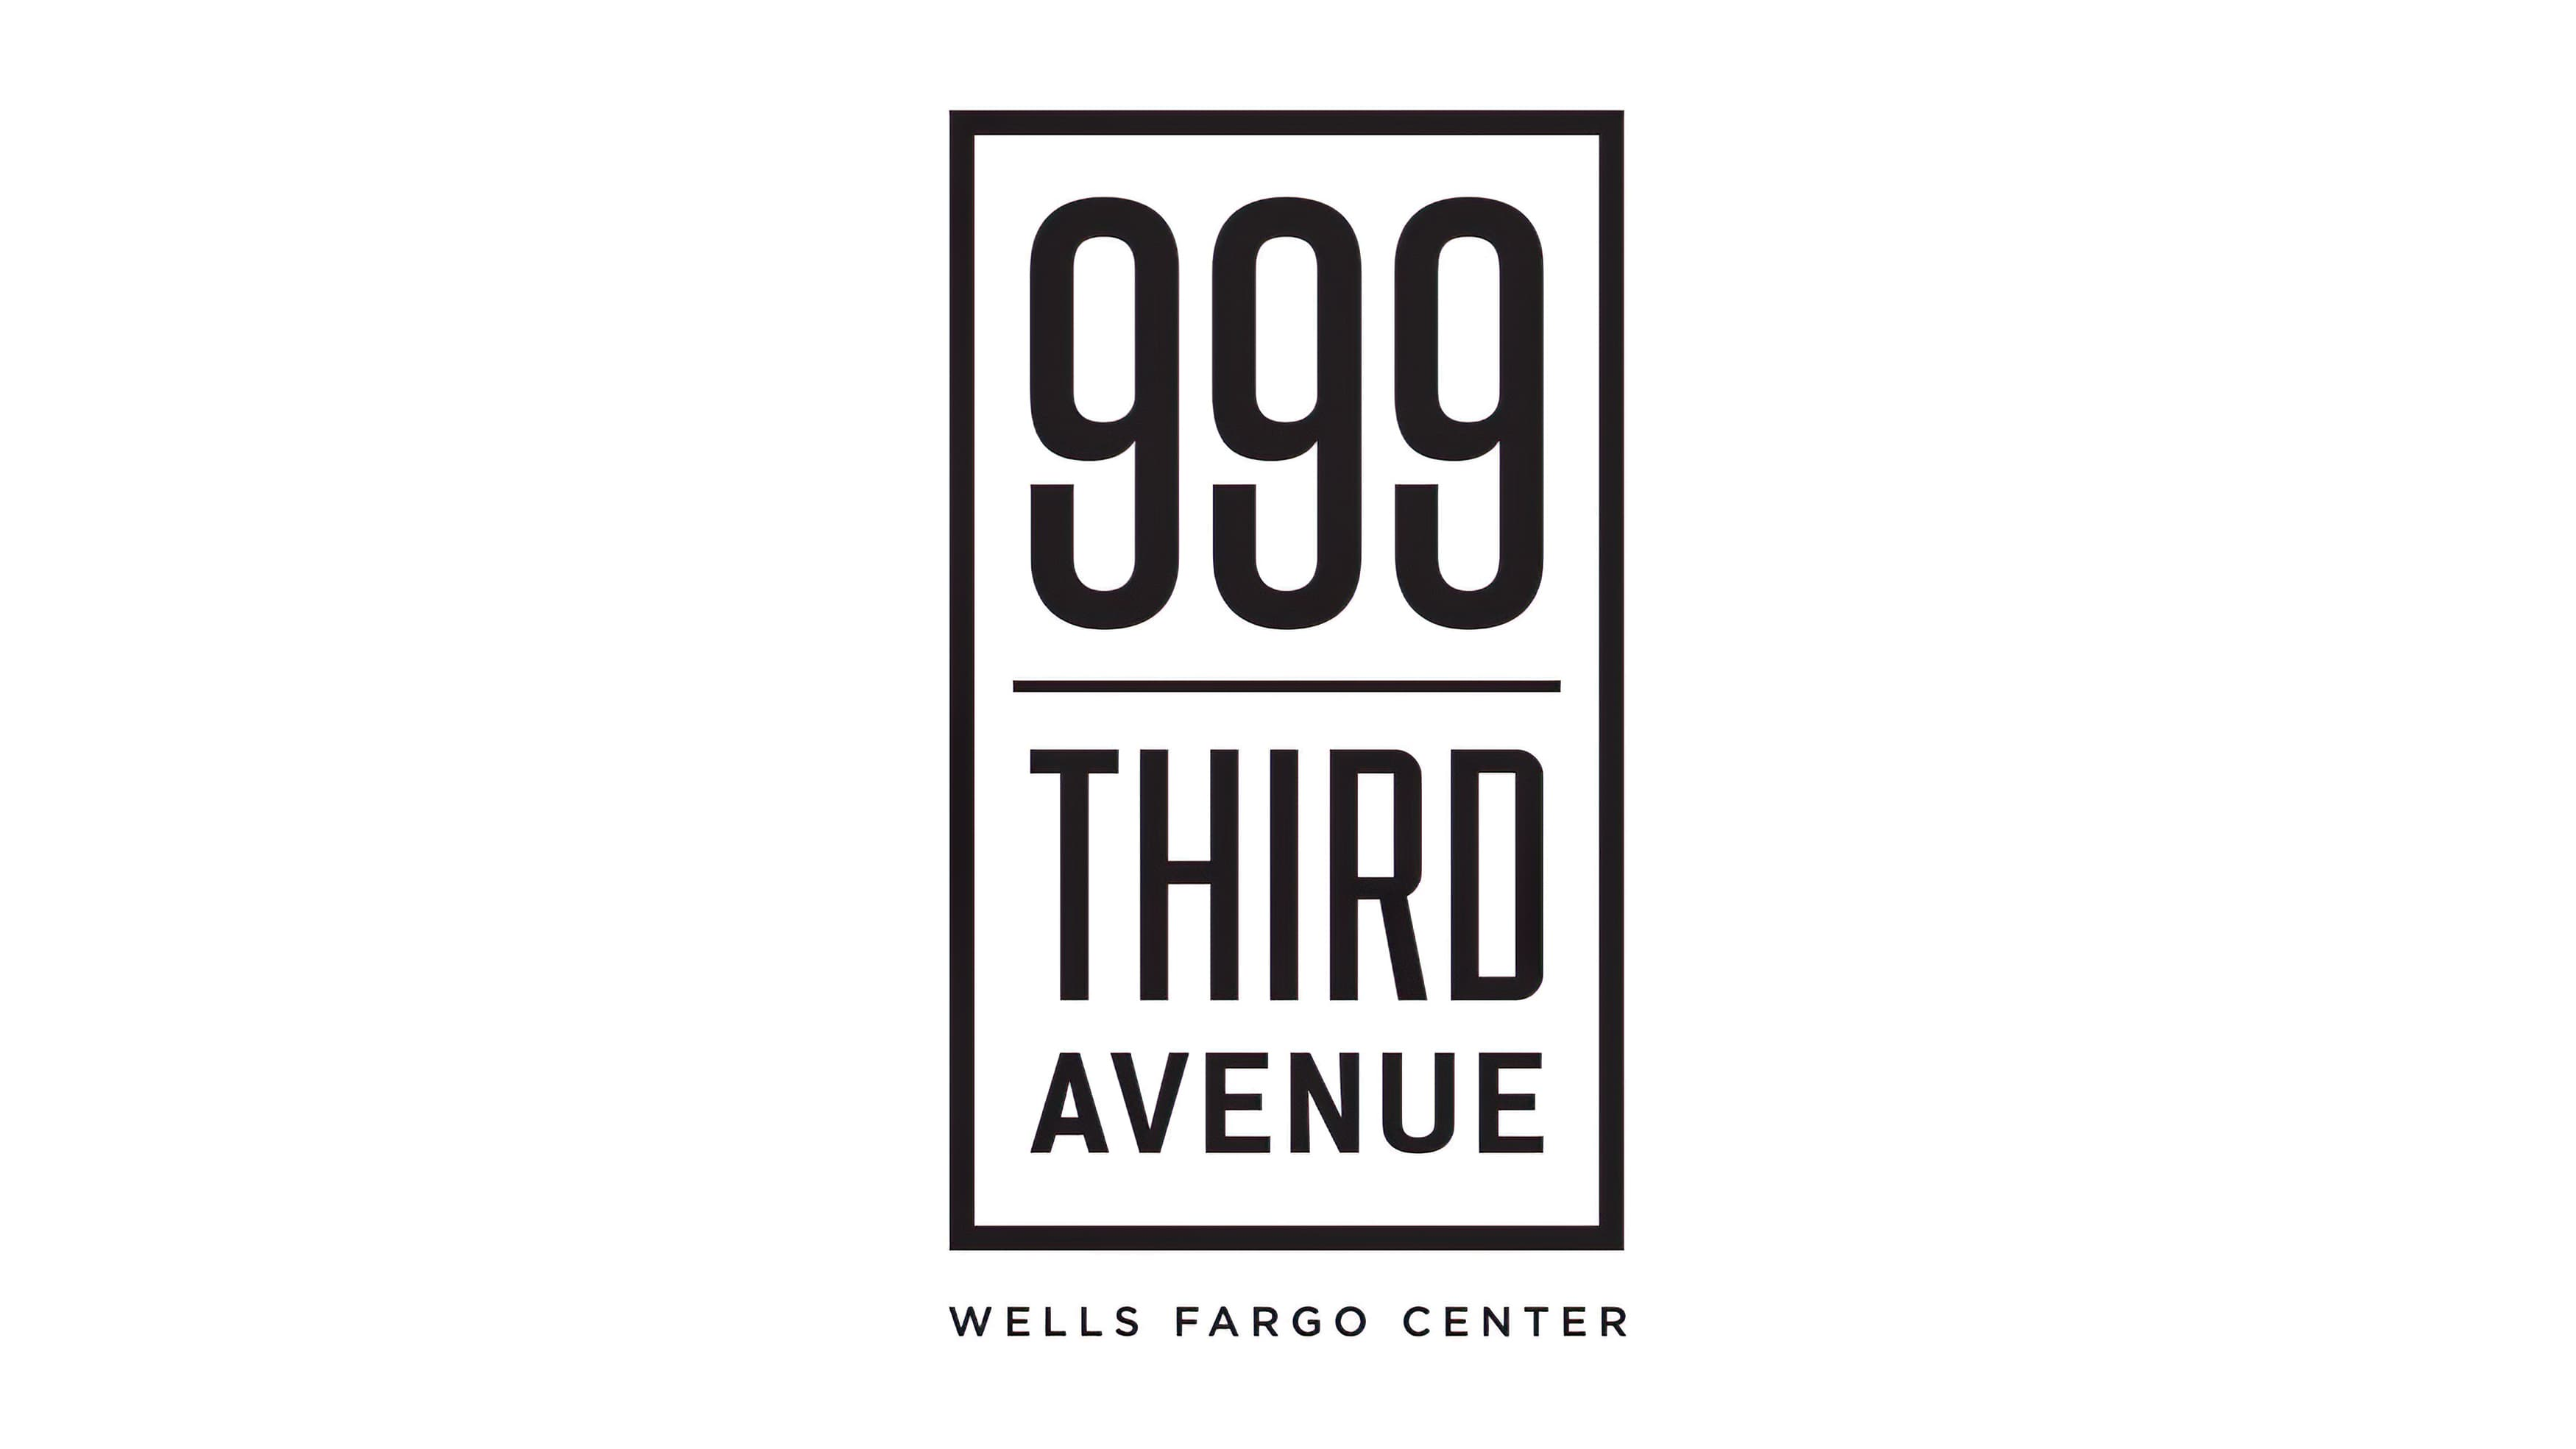 999 Third Avenue Wells Fargo Center logo designed by RSM Design